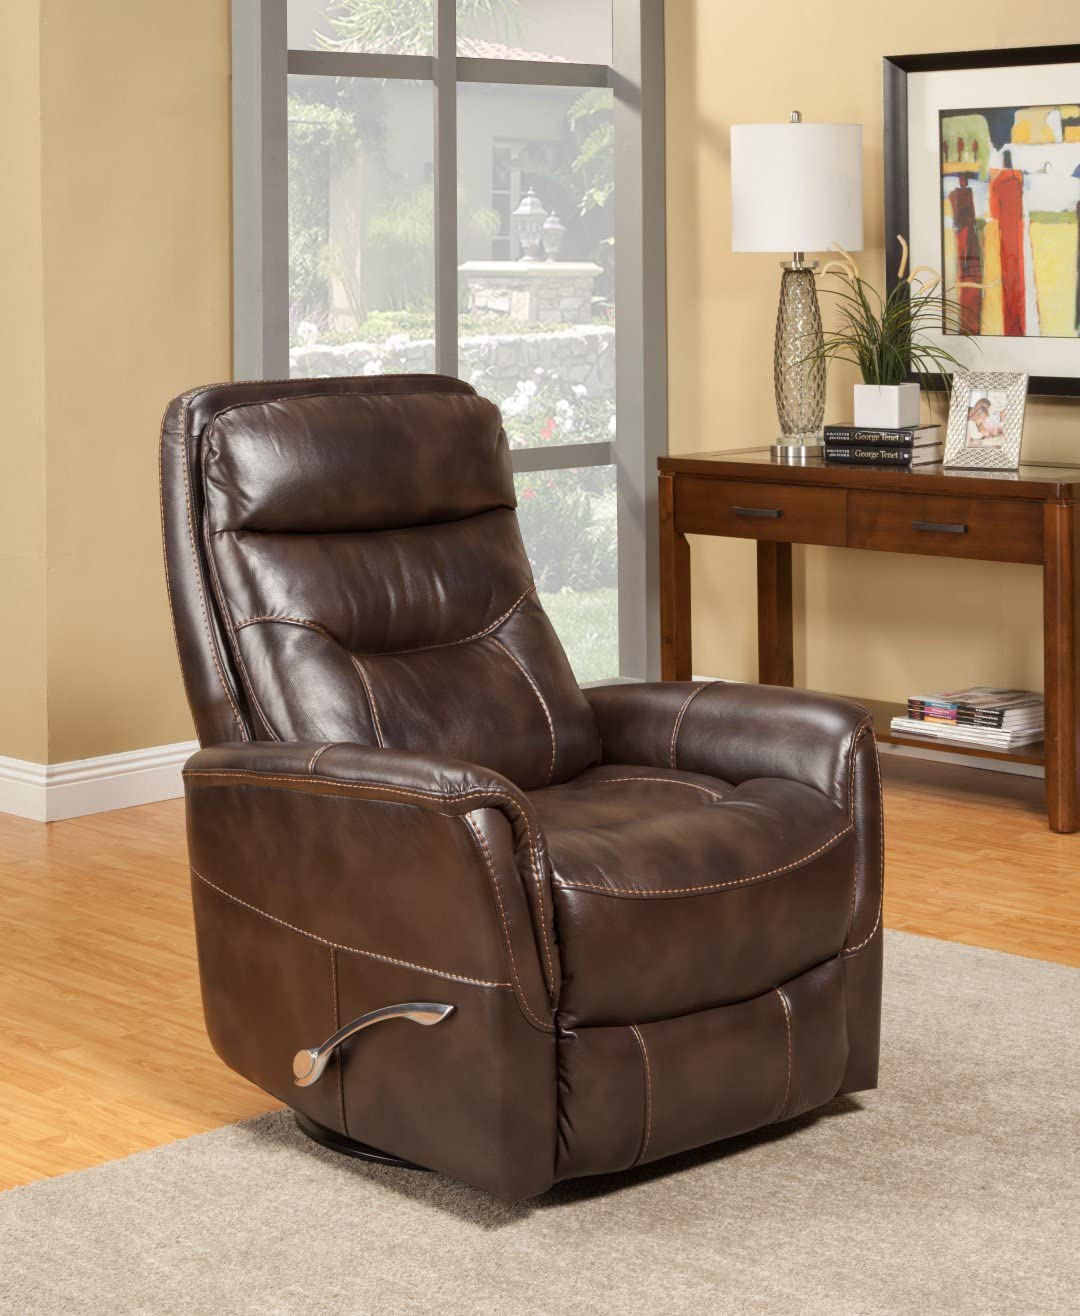 Oliver Pierce Colby Swivel Glider Recliner, Brown